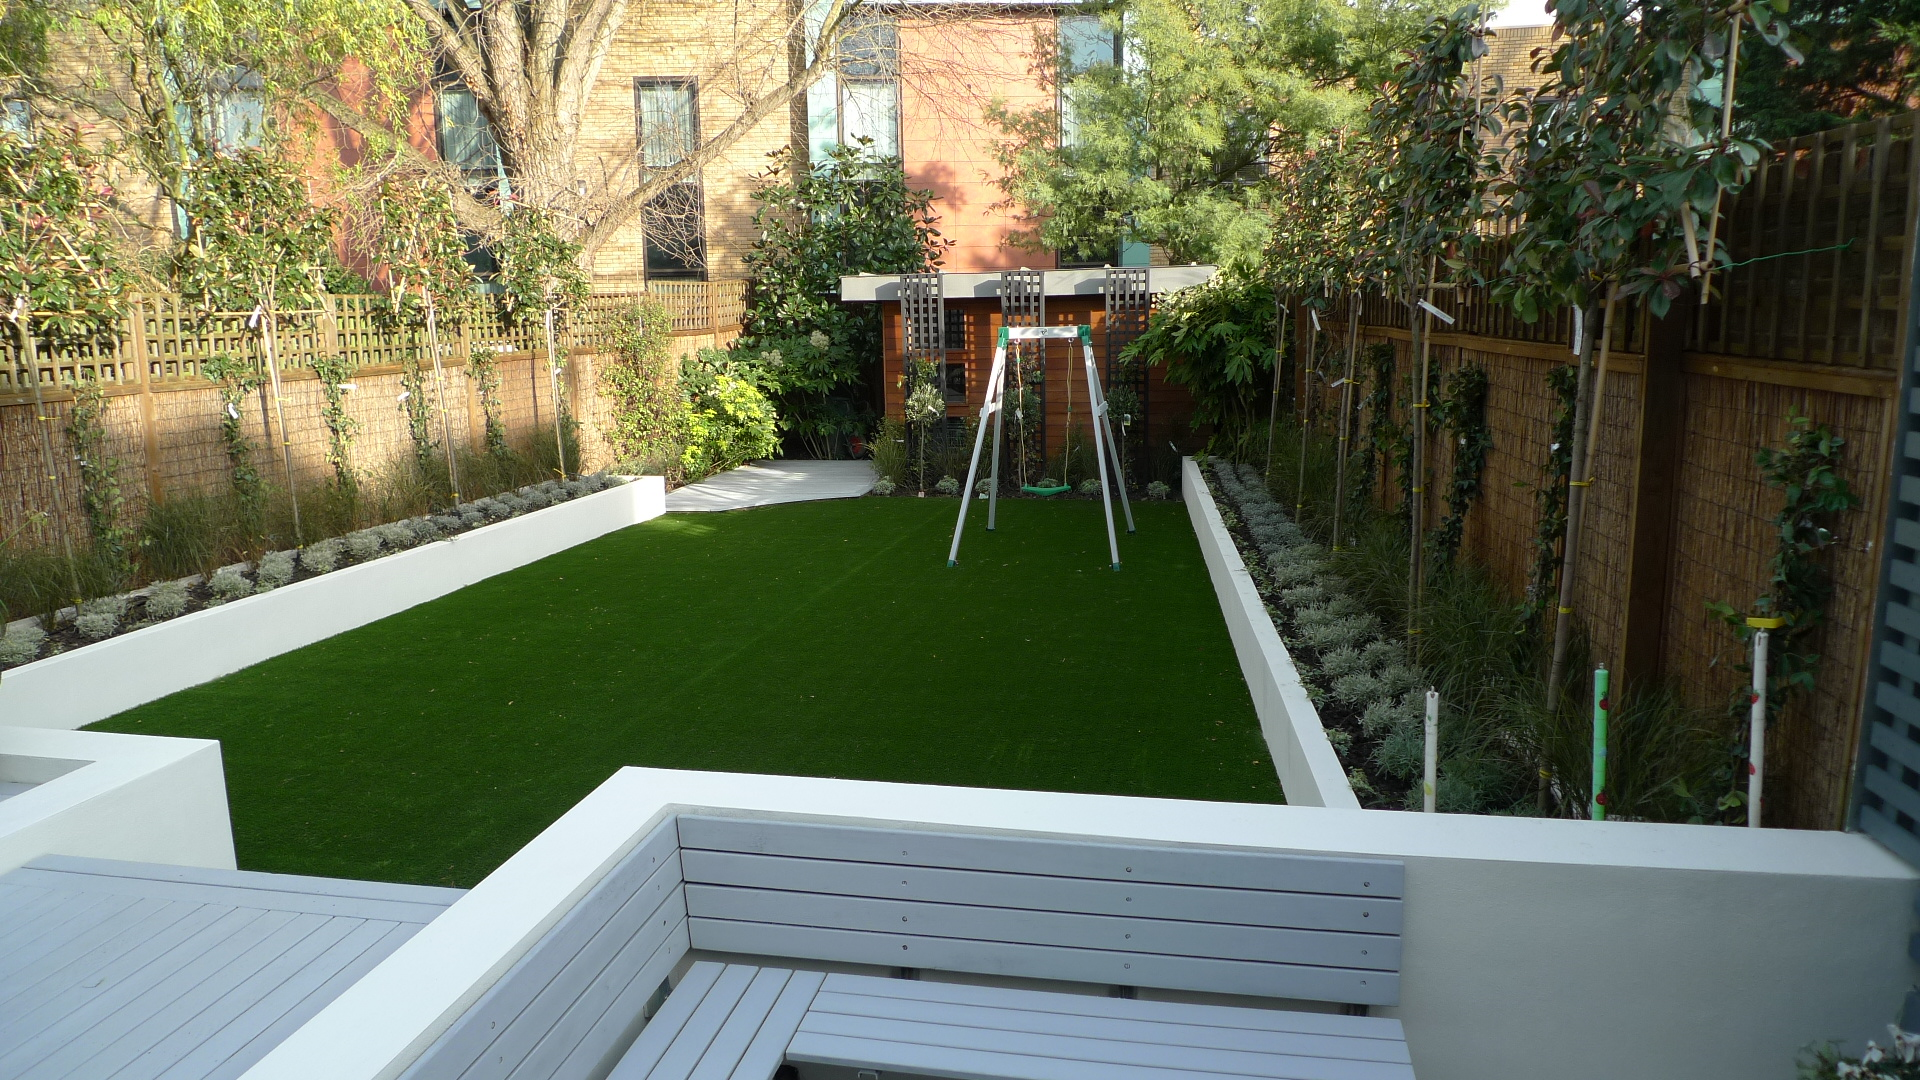 Modern garden design ideas london london garden design for New house garden ideas